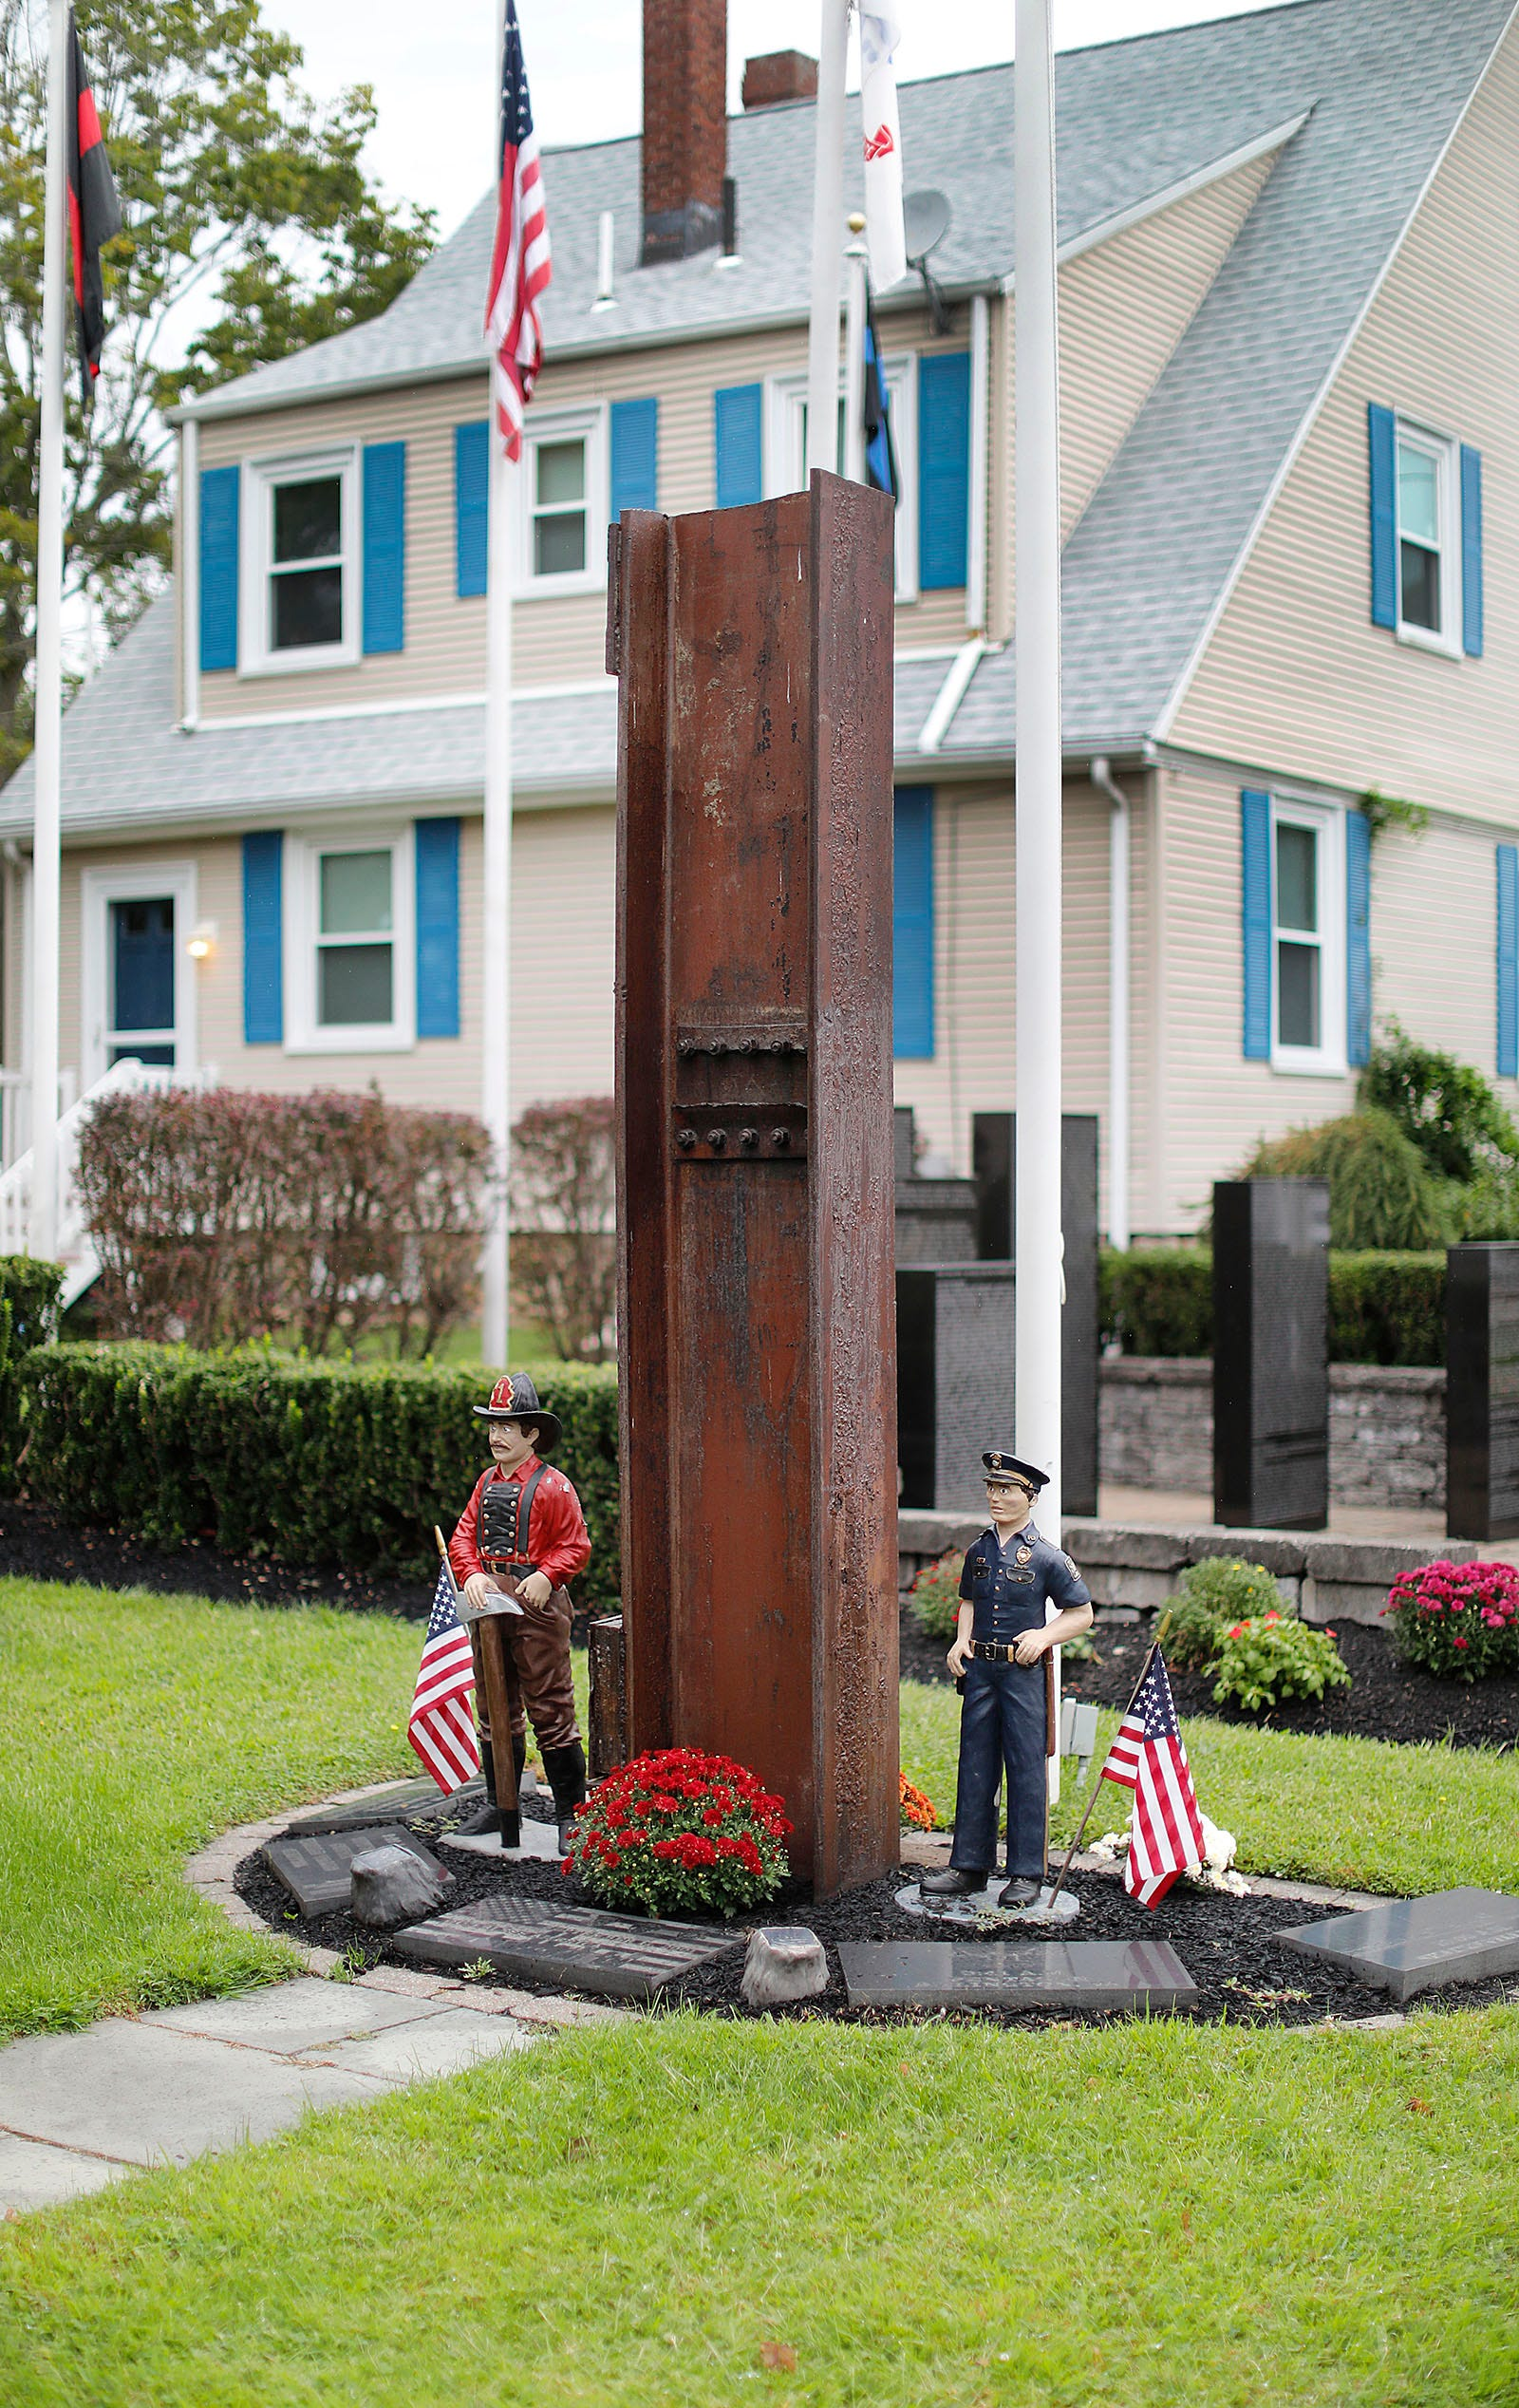 The Plymouth 9/11 memorial off of Court Street, which features a steel beam from the World Trade Center in New York.